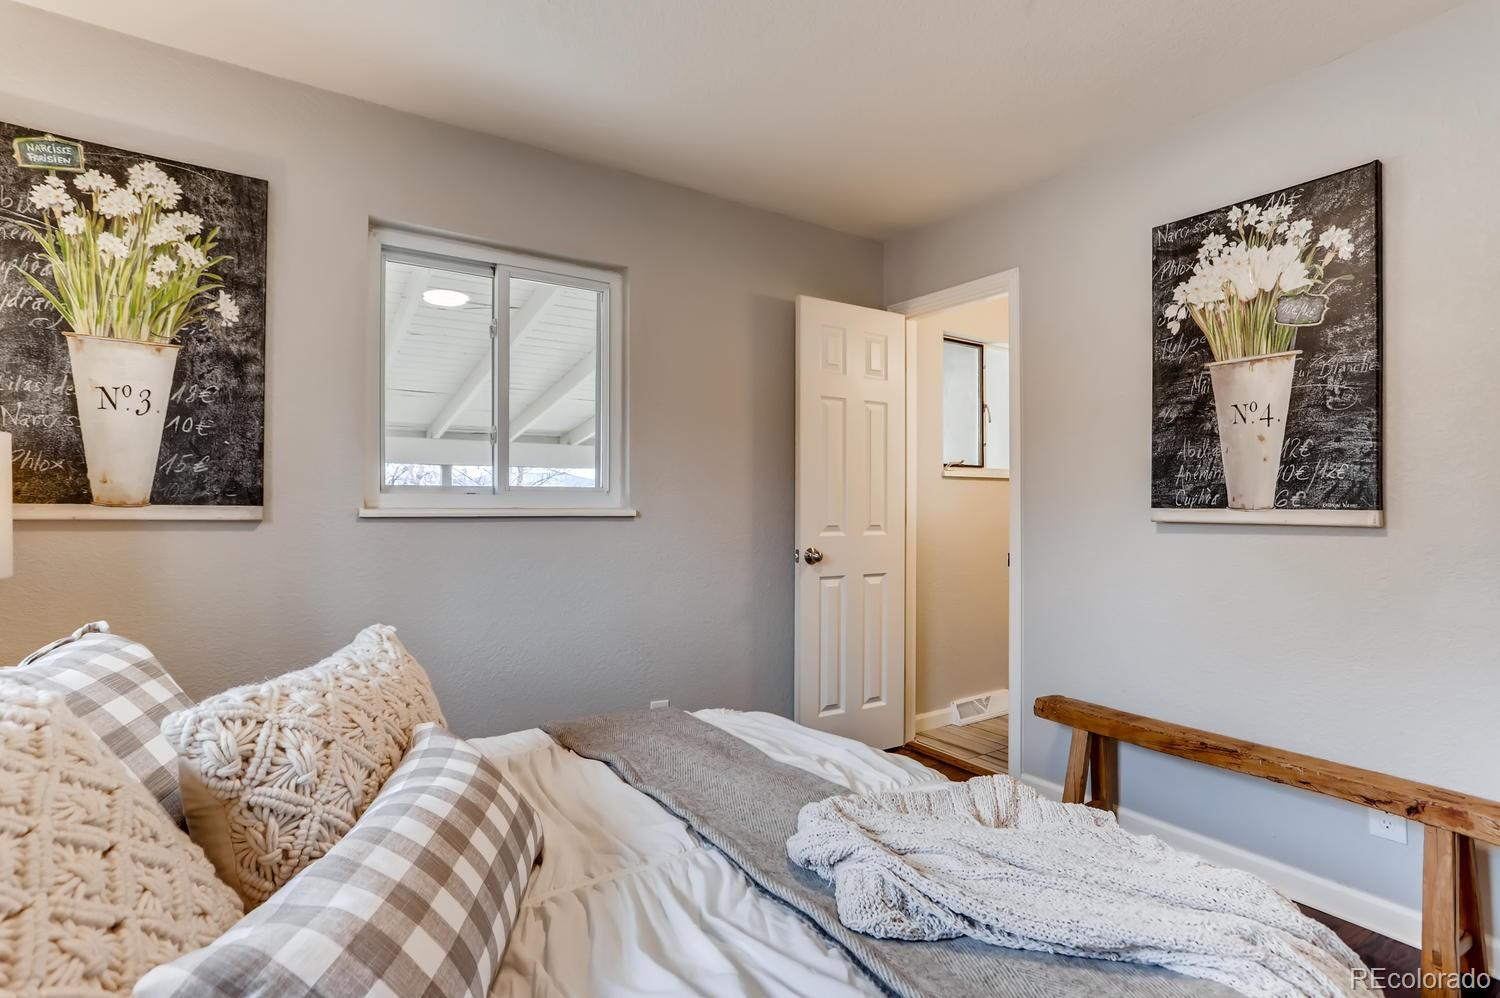 MLS# 2830054 - 12 - 8408 W 62nd Place, Arvada, CO 80004